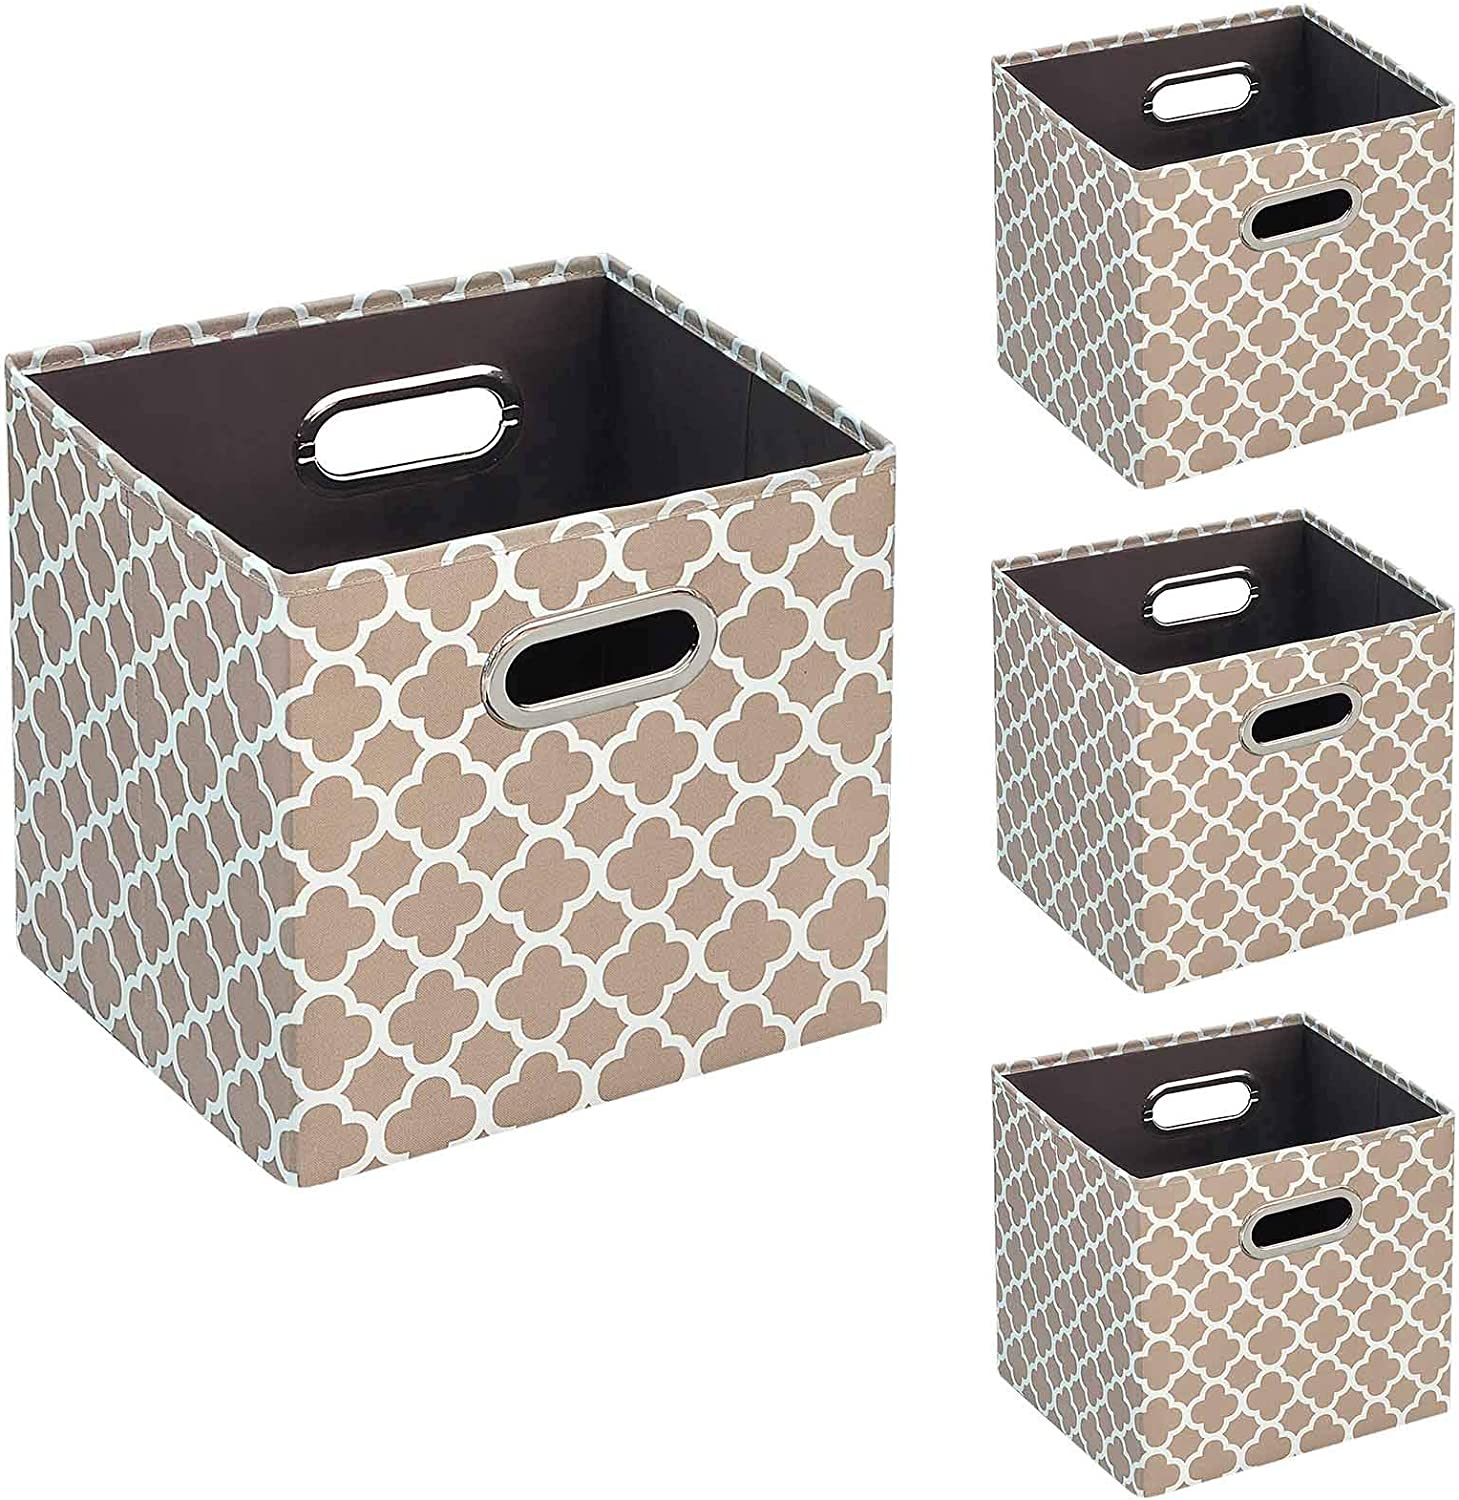 BRIAN & DANY Storage Boxes,Foldable Storage Cubes,Set of 4, Beige